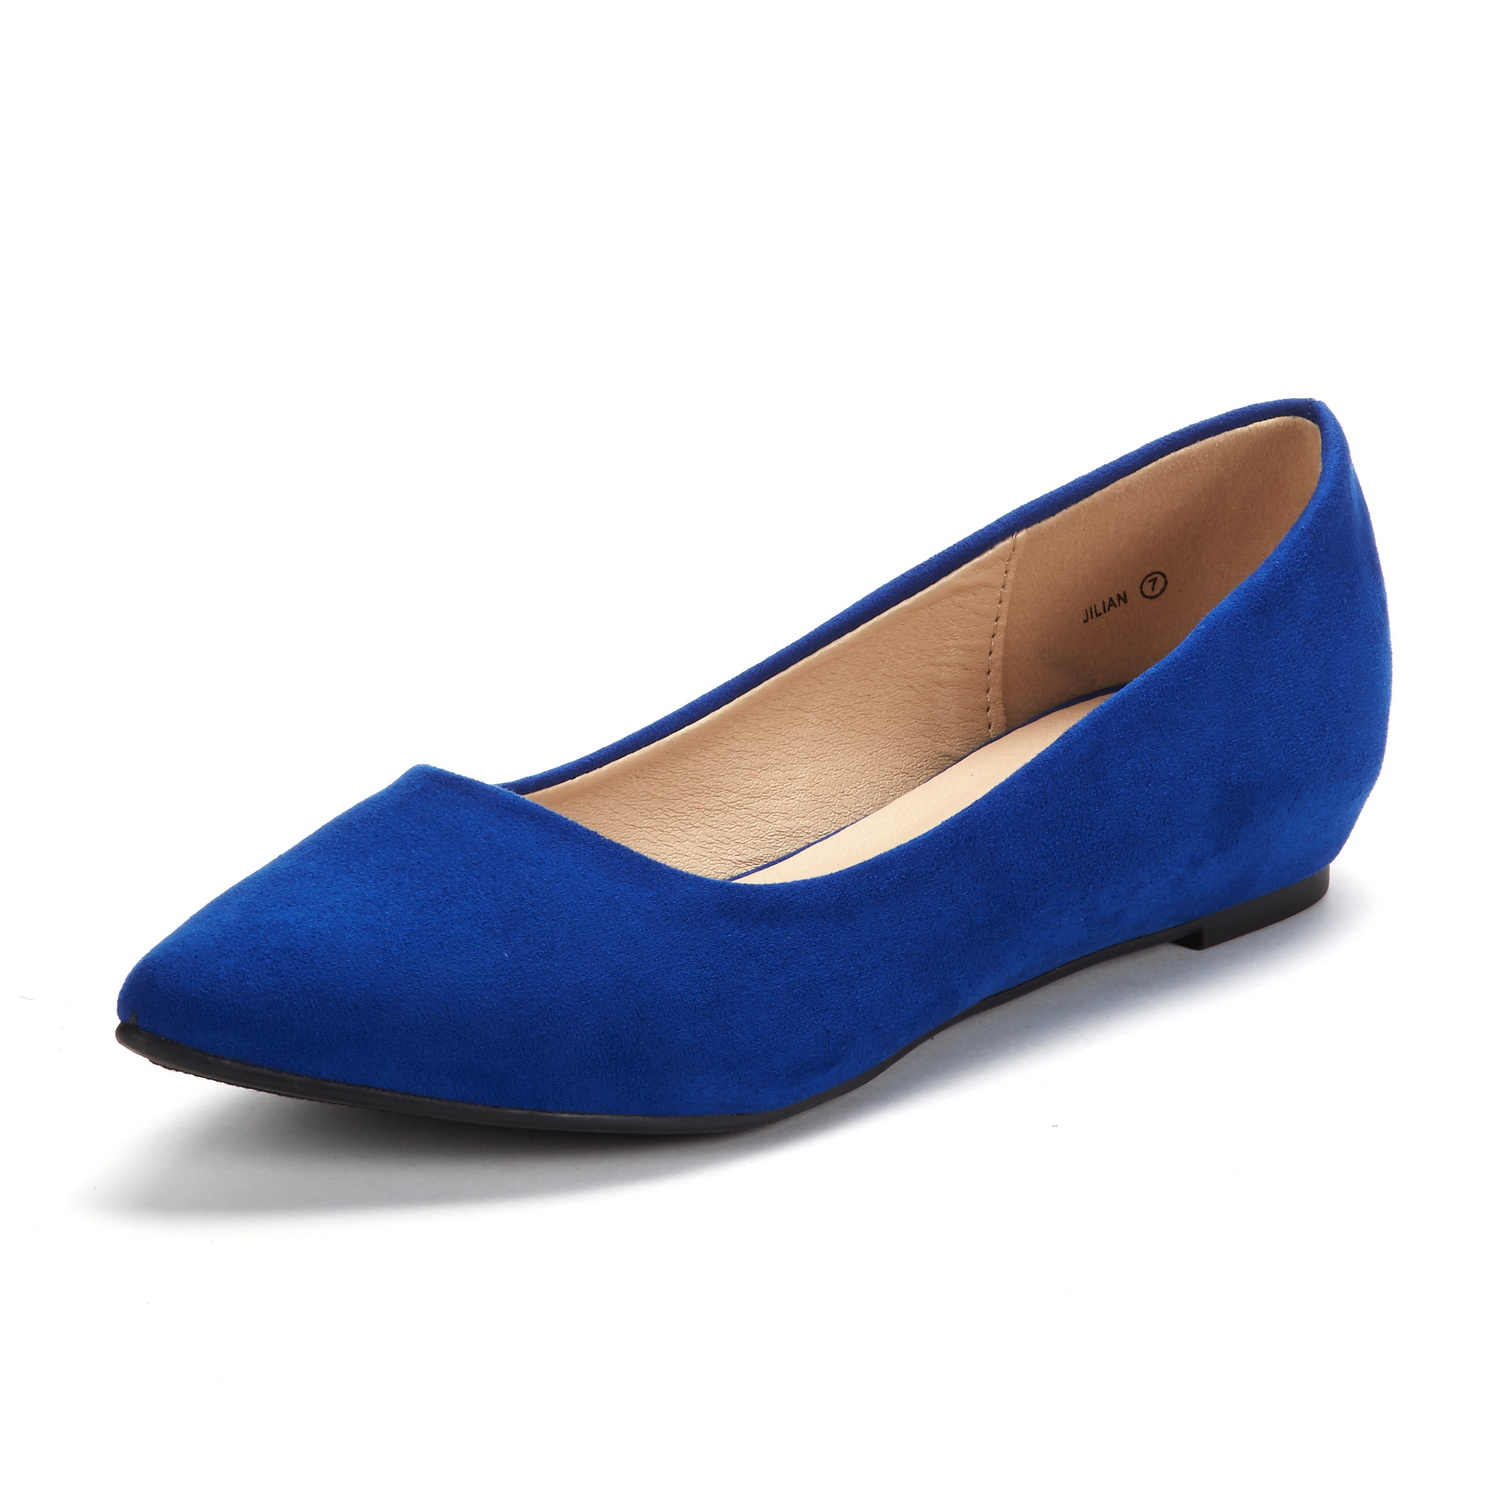 DREAM-PAIRS-Women-Low-Wedge-Flats-Ladies-Pointed-Toe-Slip-On-Comfort-Flat-Shoes thumbnail 14